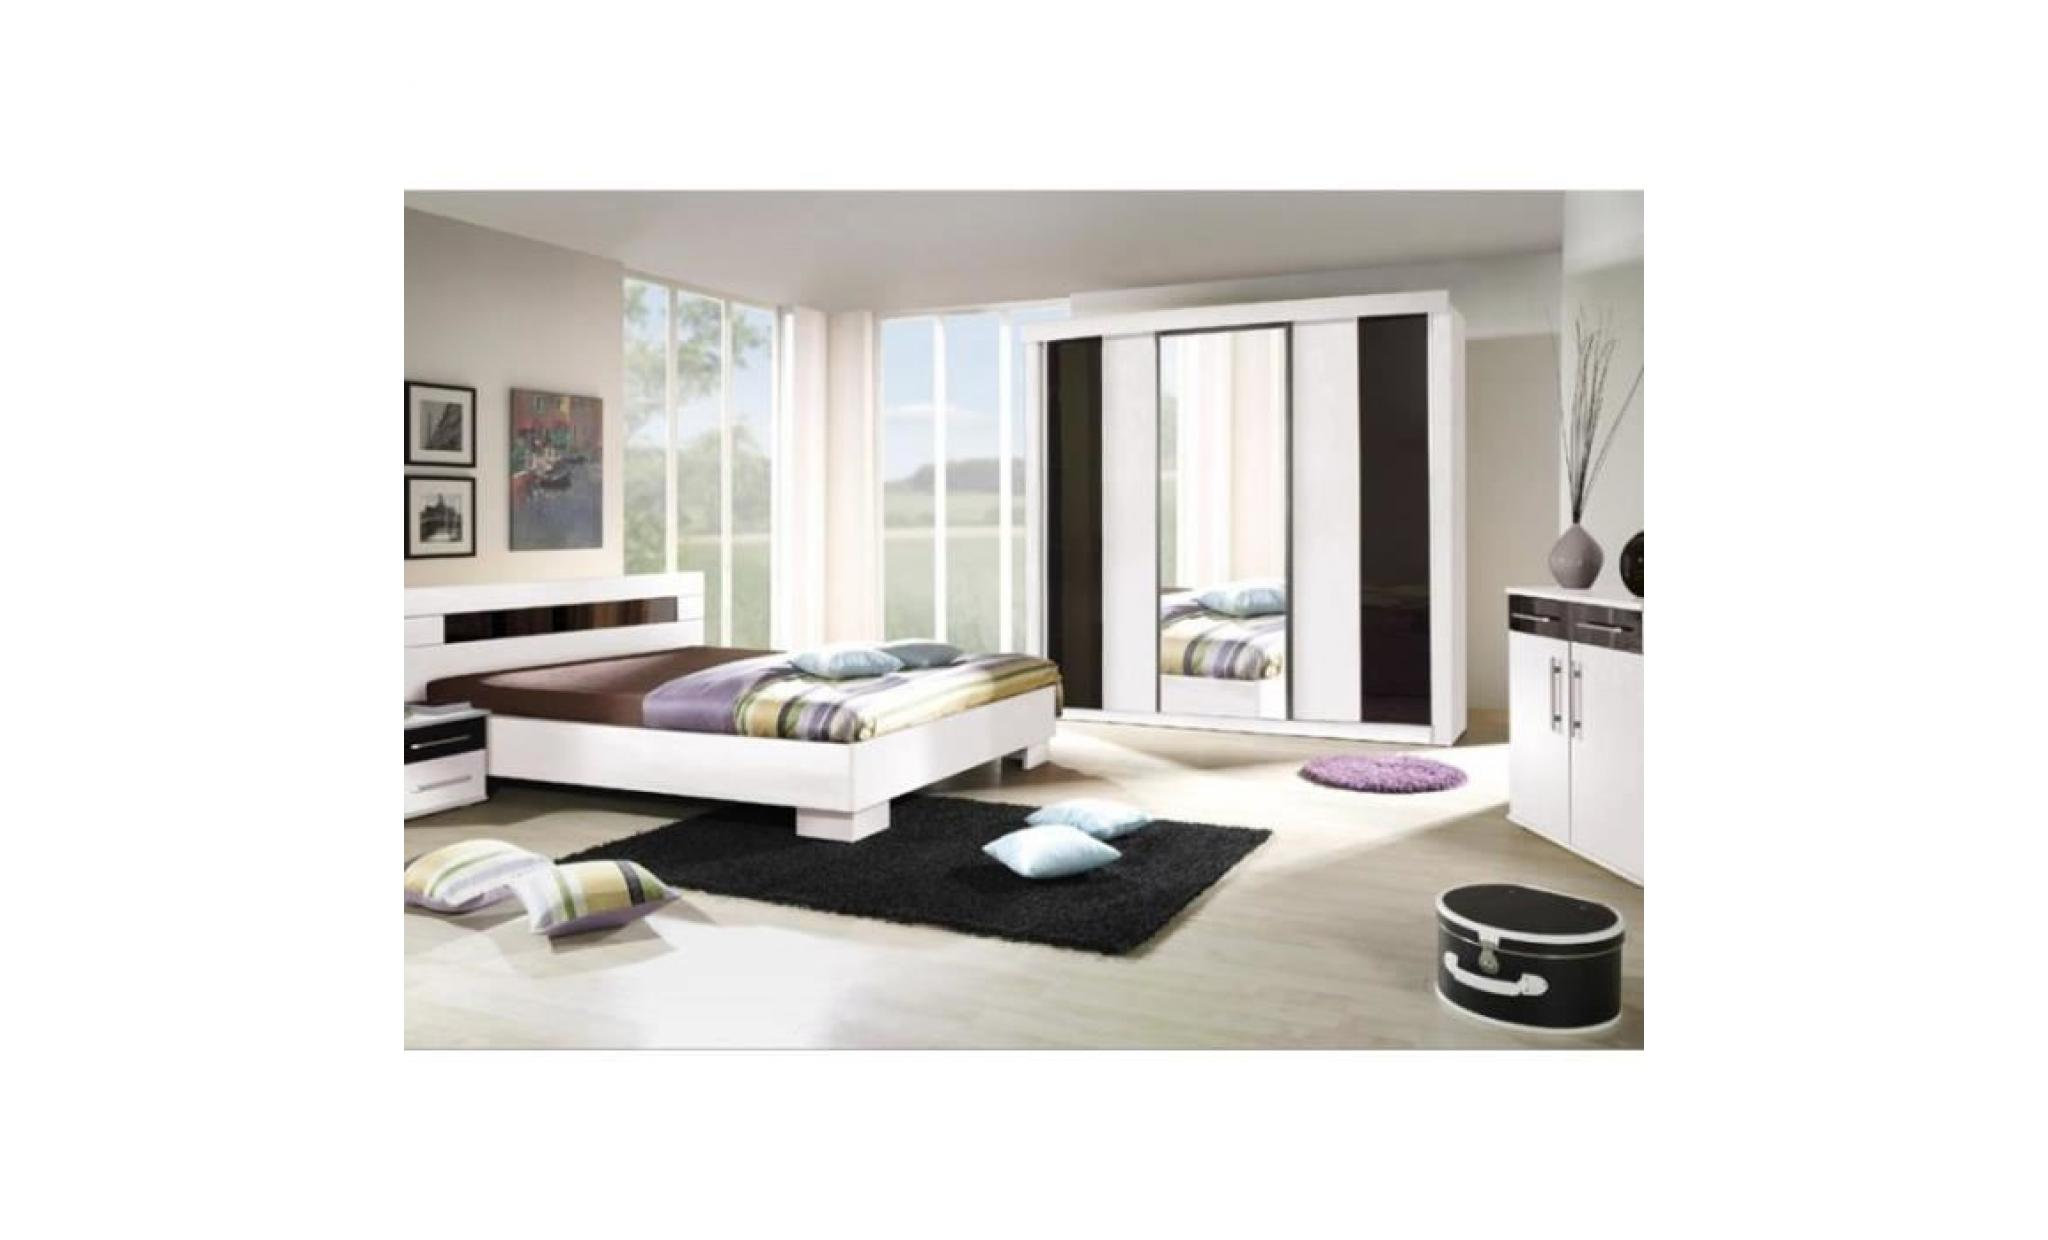 chambre coucher compl te dublin adulte design blanche lit 140x190 cm armoire commode 2. Black Bedroom Furniture Sets. Home Design Ideas